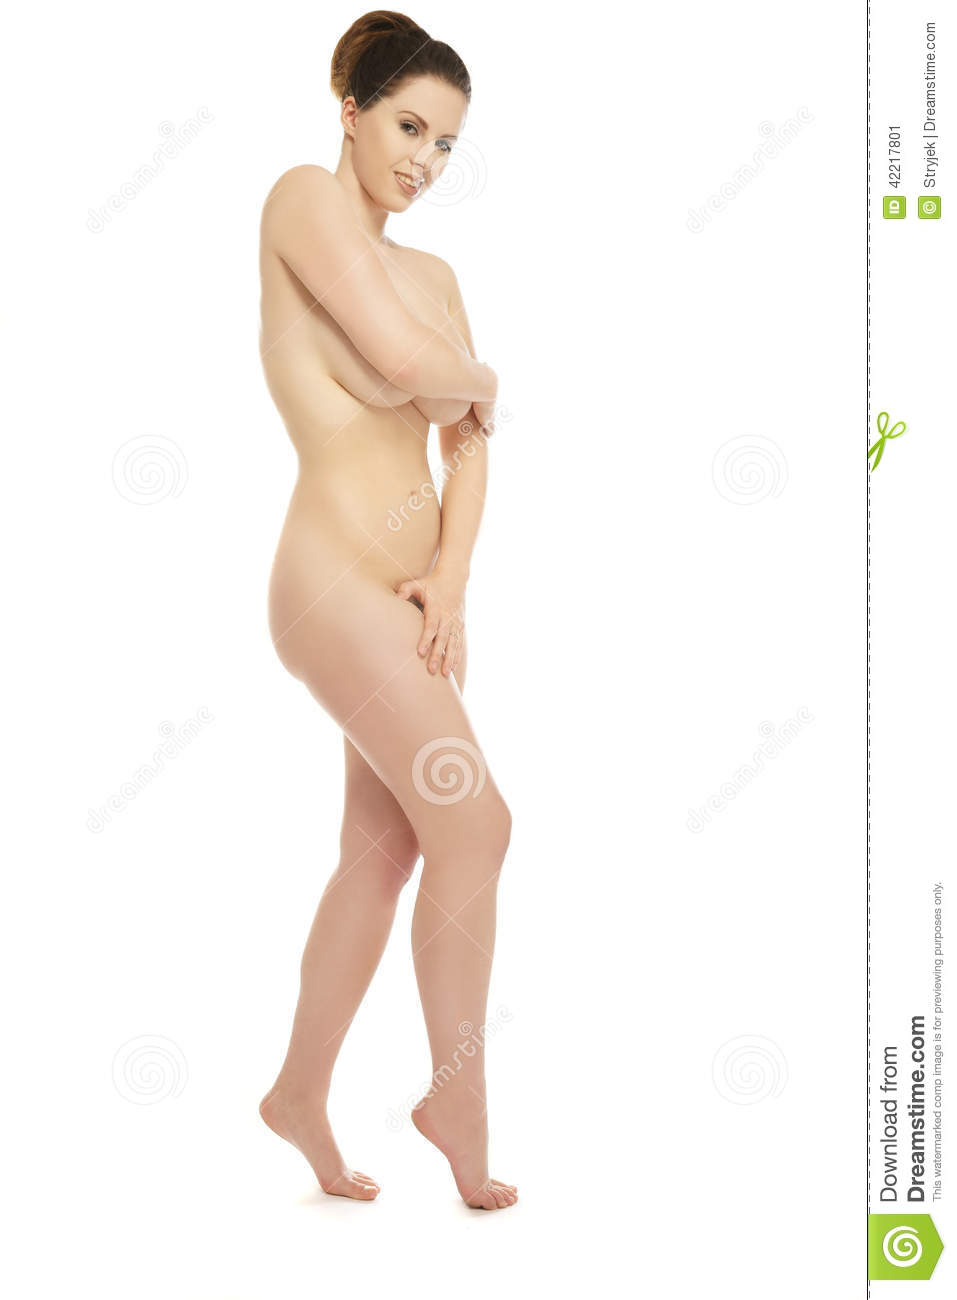 naked girl covering parts